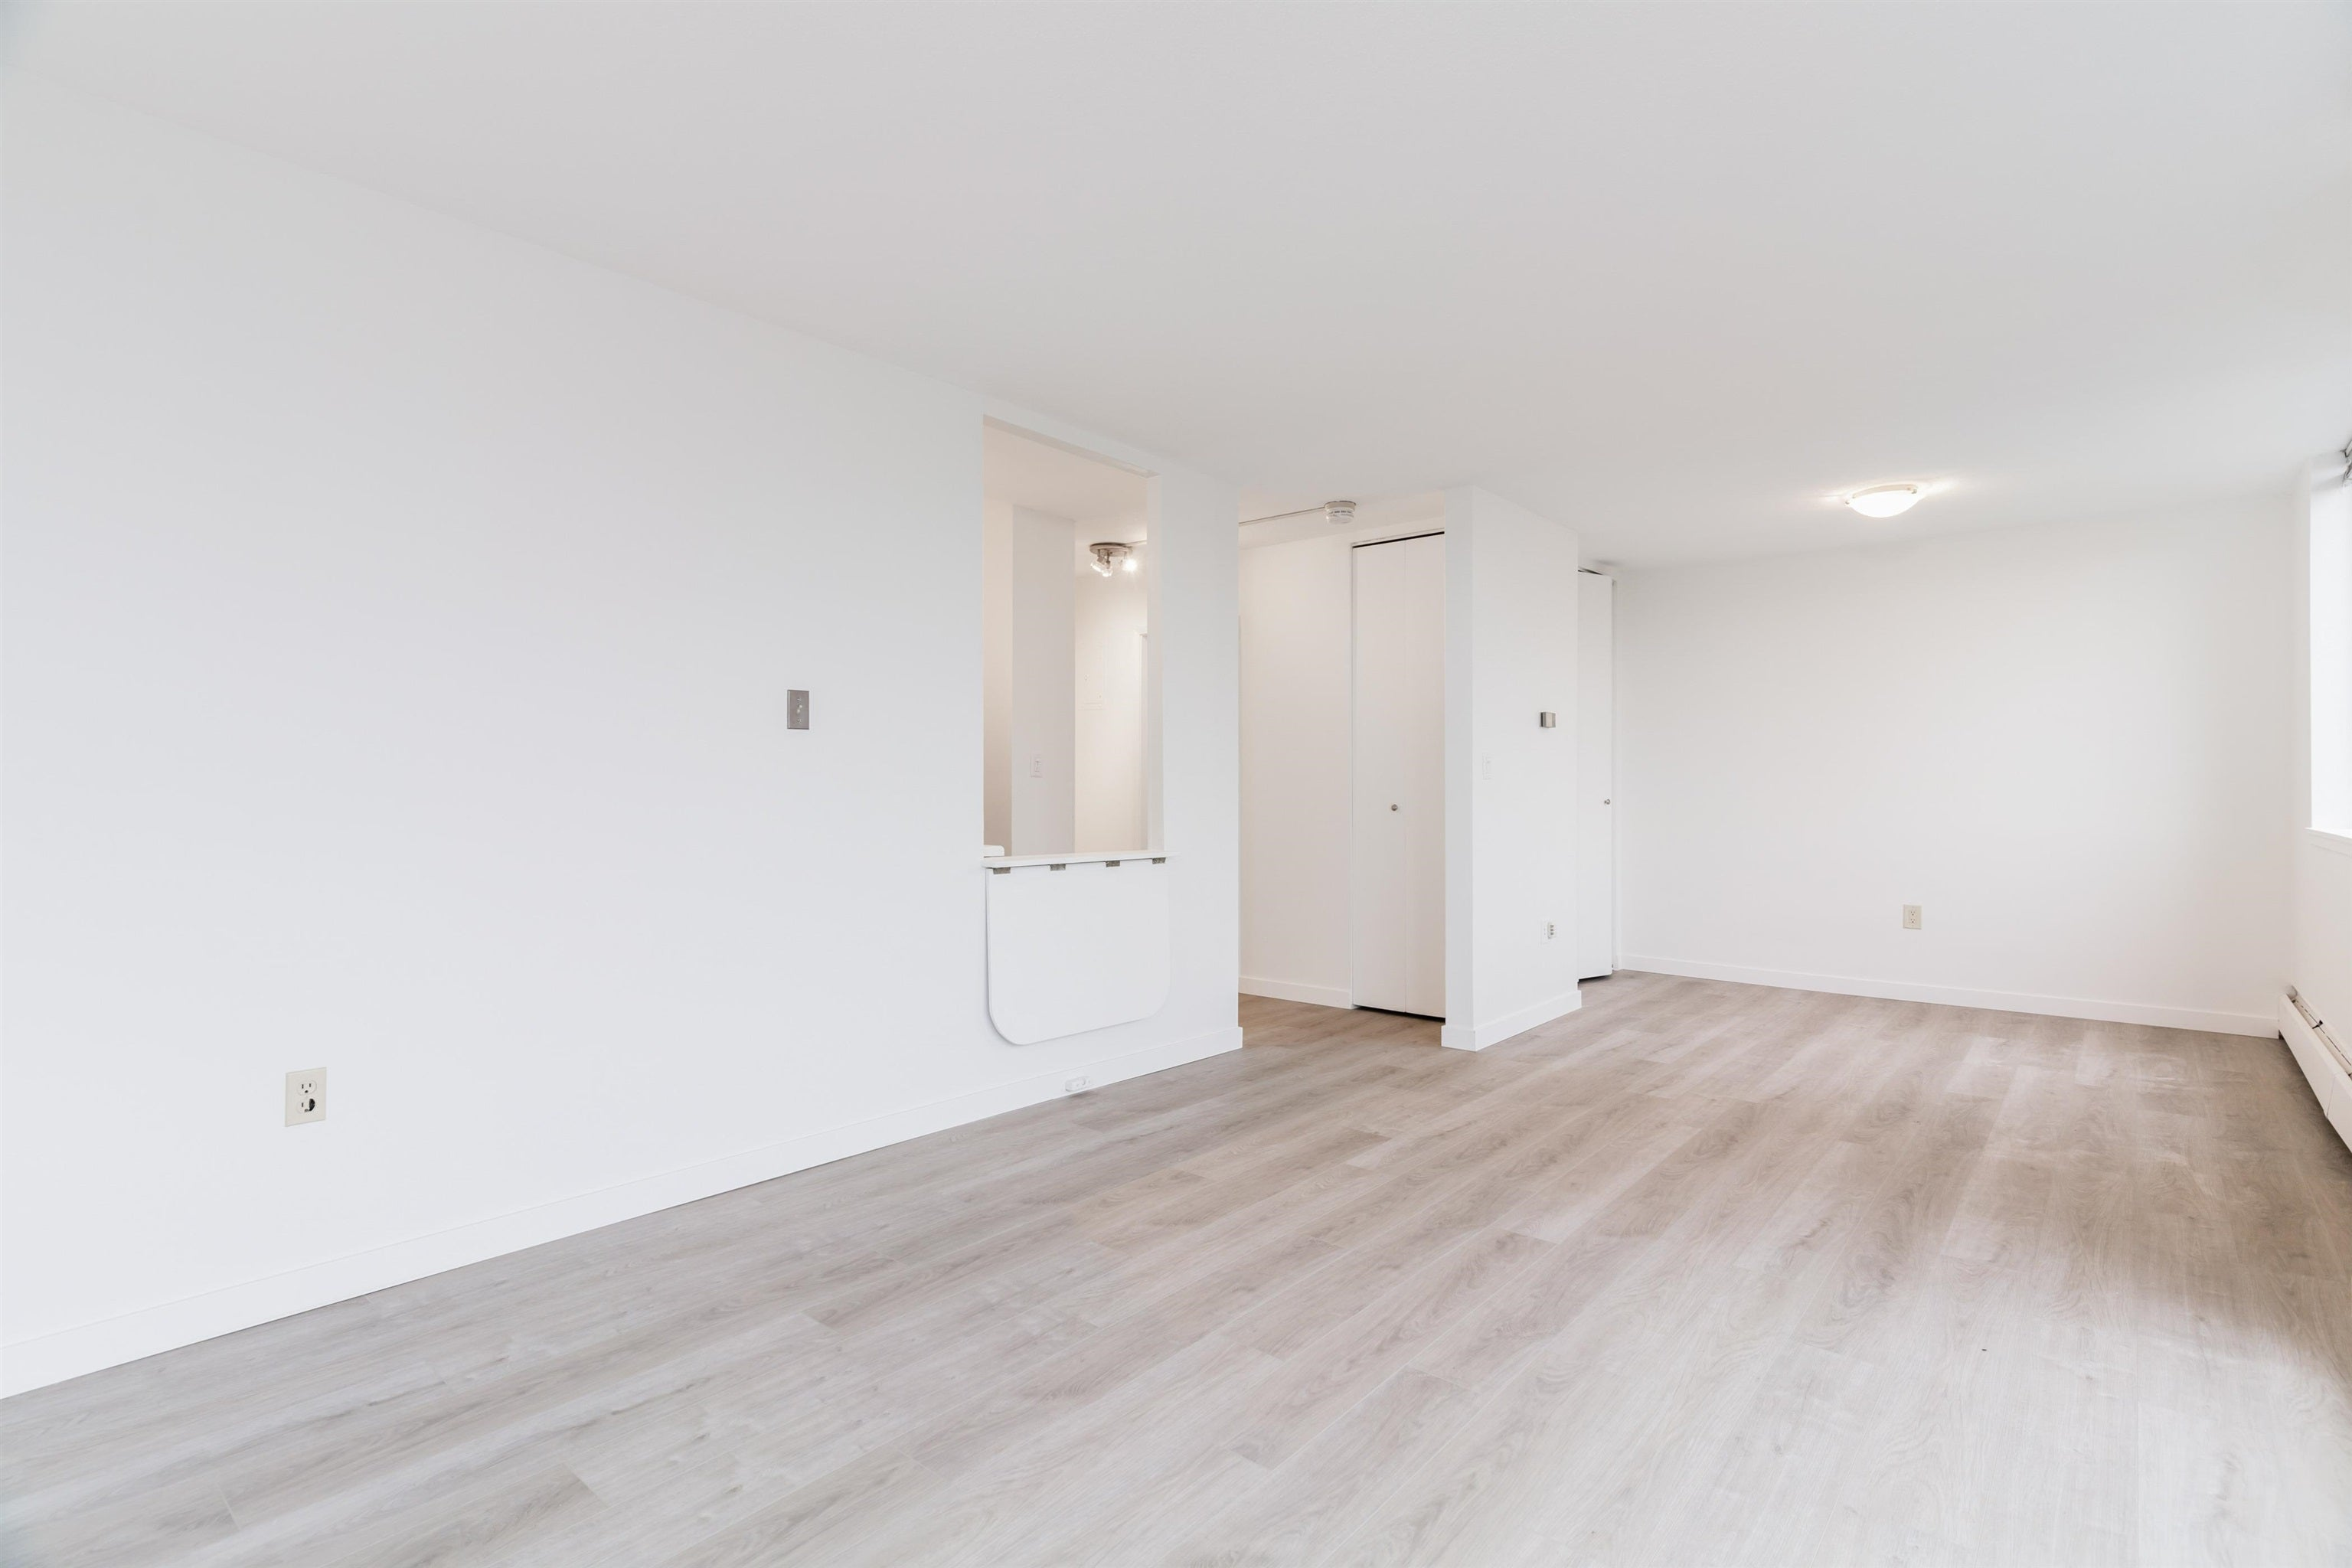 806 1251 CARDERO STREET - West End VW Apartment/Condo for sale, 1 Bedroom (R2625738) - #7